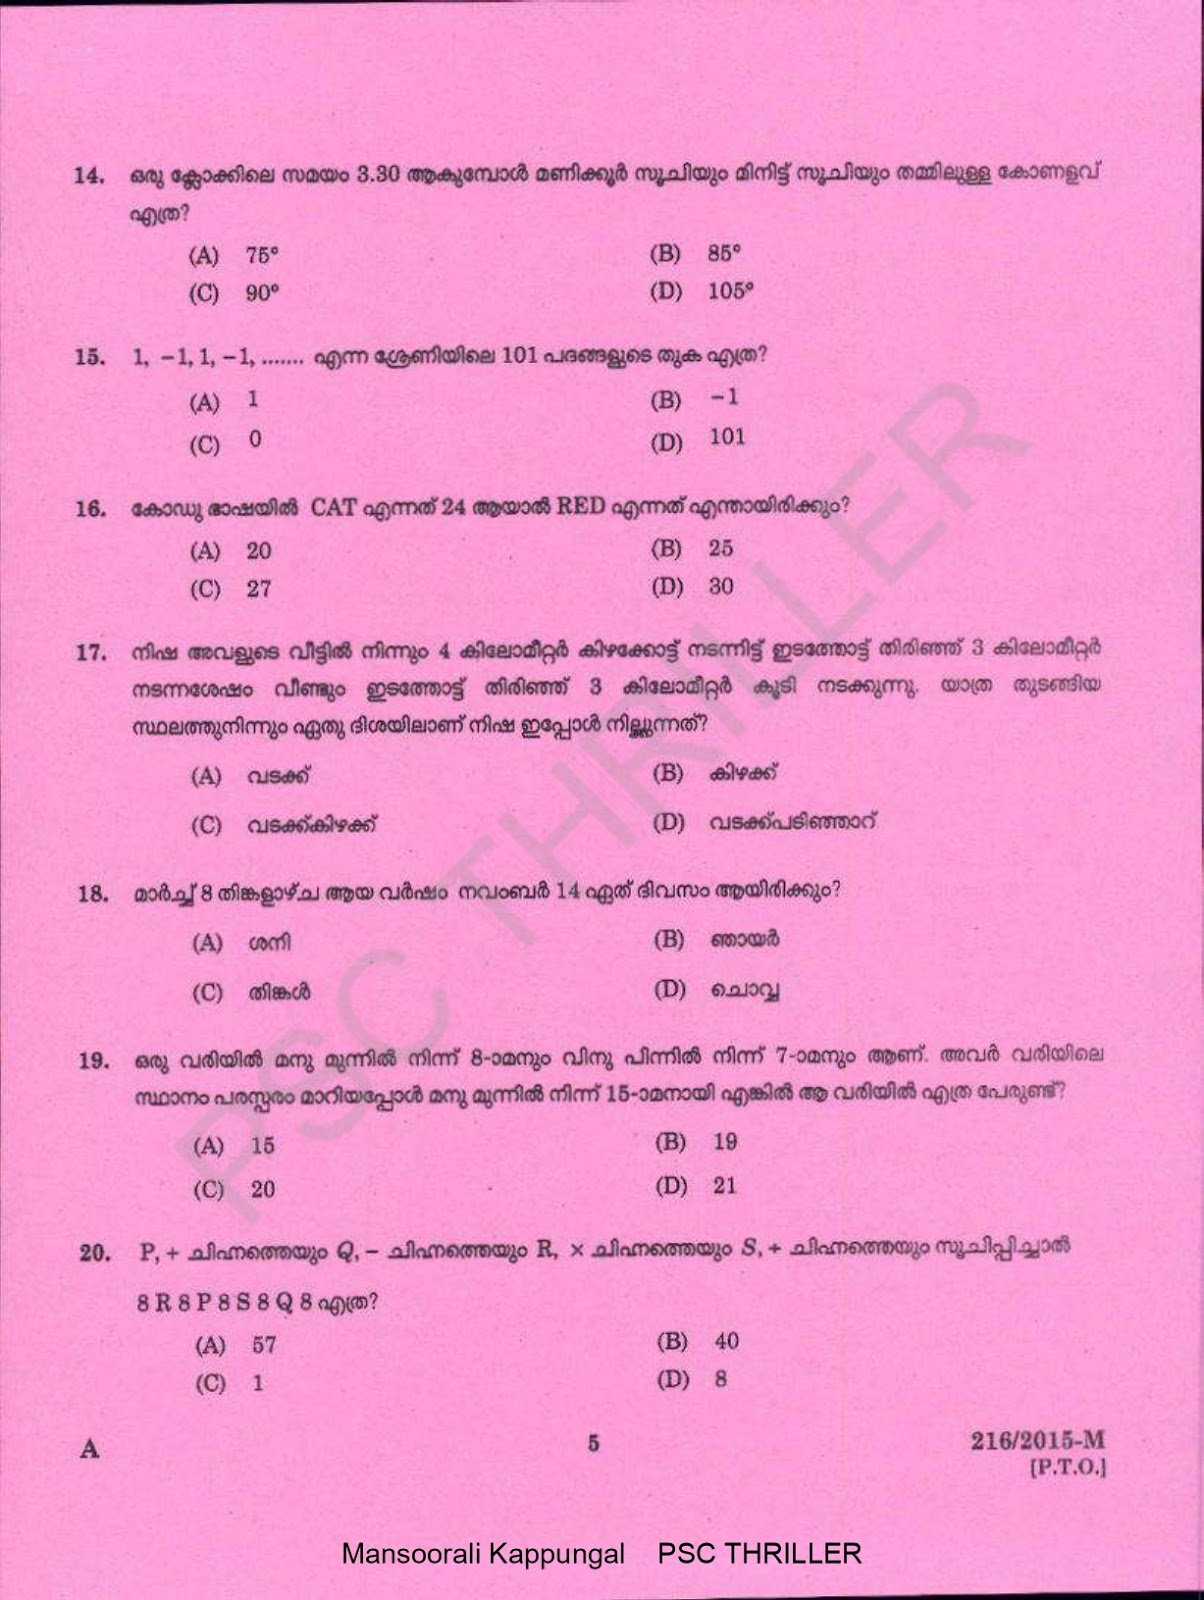 Village Extension Officer (VEO) -Question Paper  216/2015 - Kerala PSC